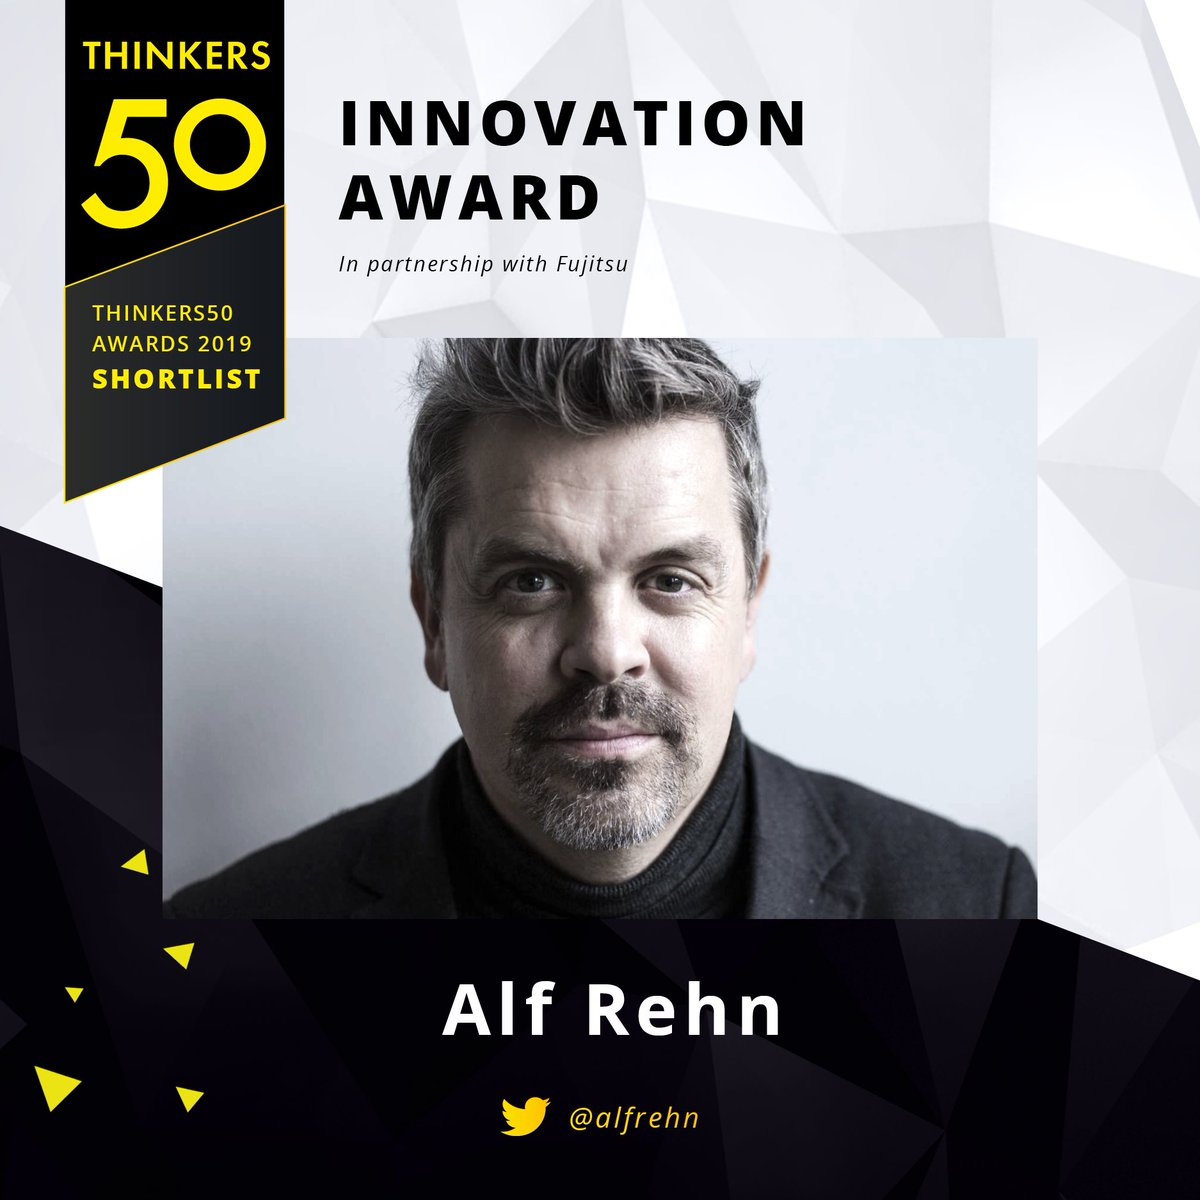 Very proud to be shortlisted for this, the @Thinkers50 Innovation Award 2019!